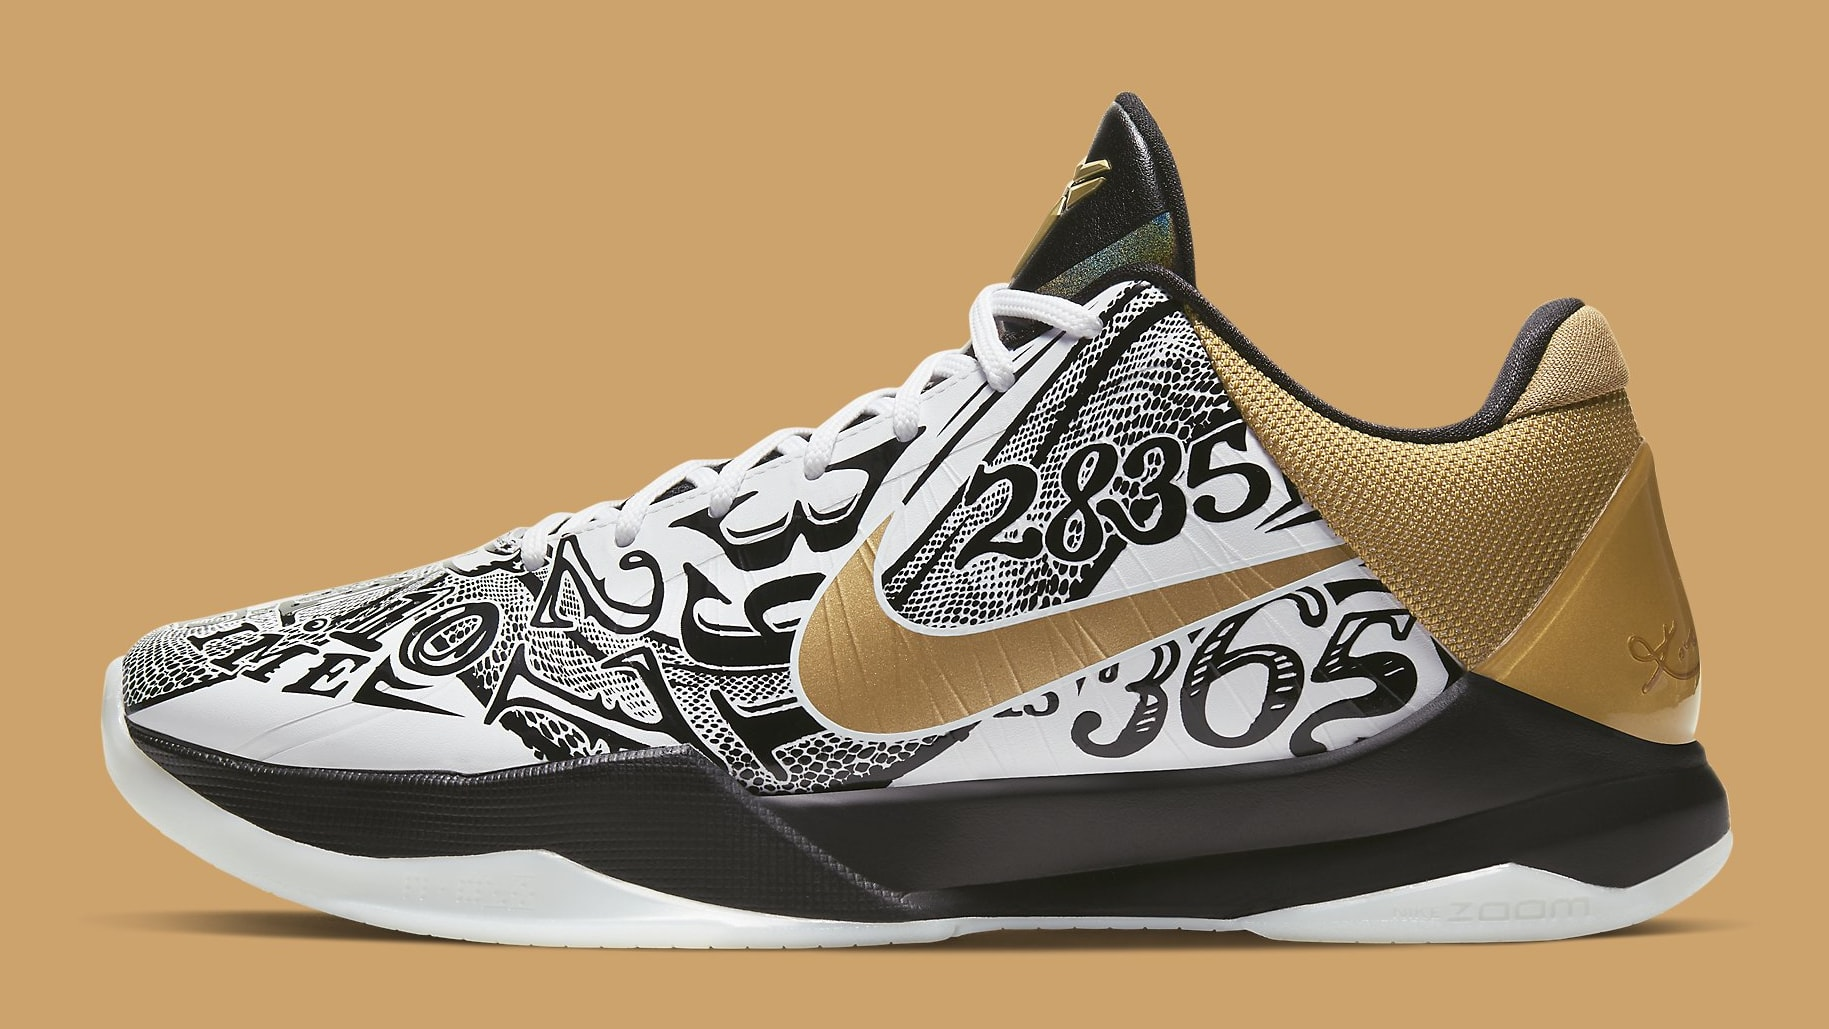 Nike Kobe 5 Big Stage Parade Release Date CT8014-100 Profile